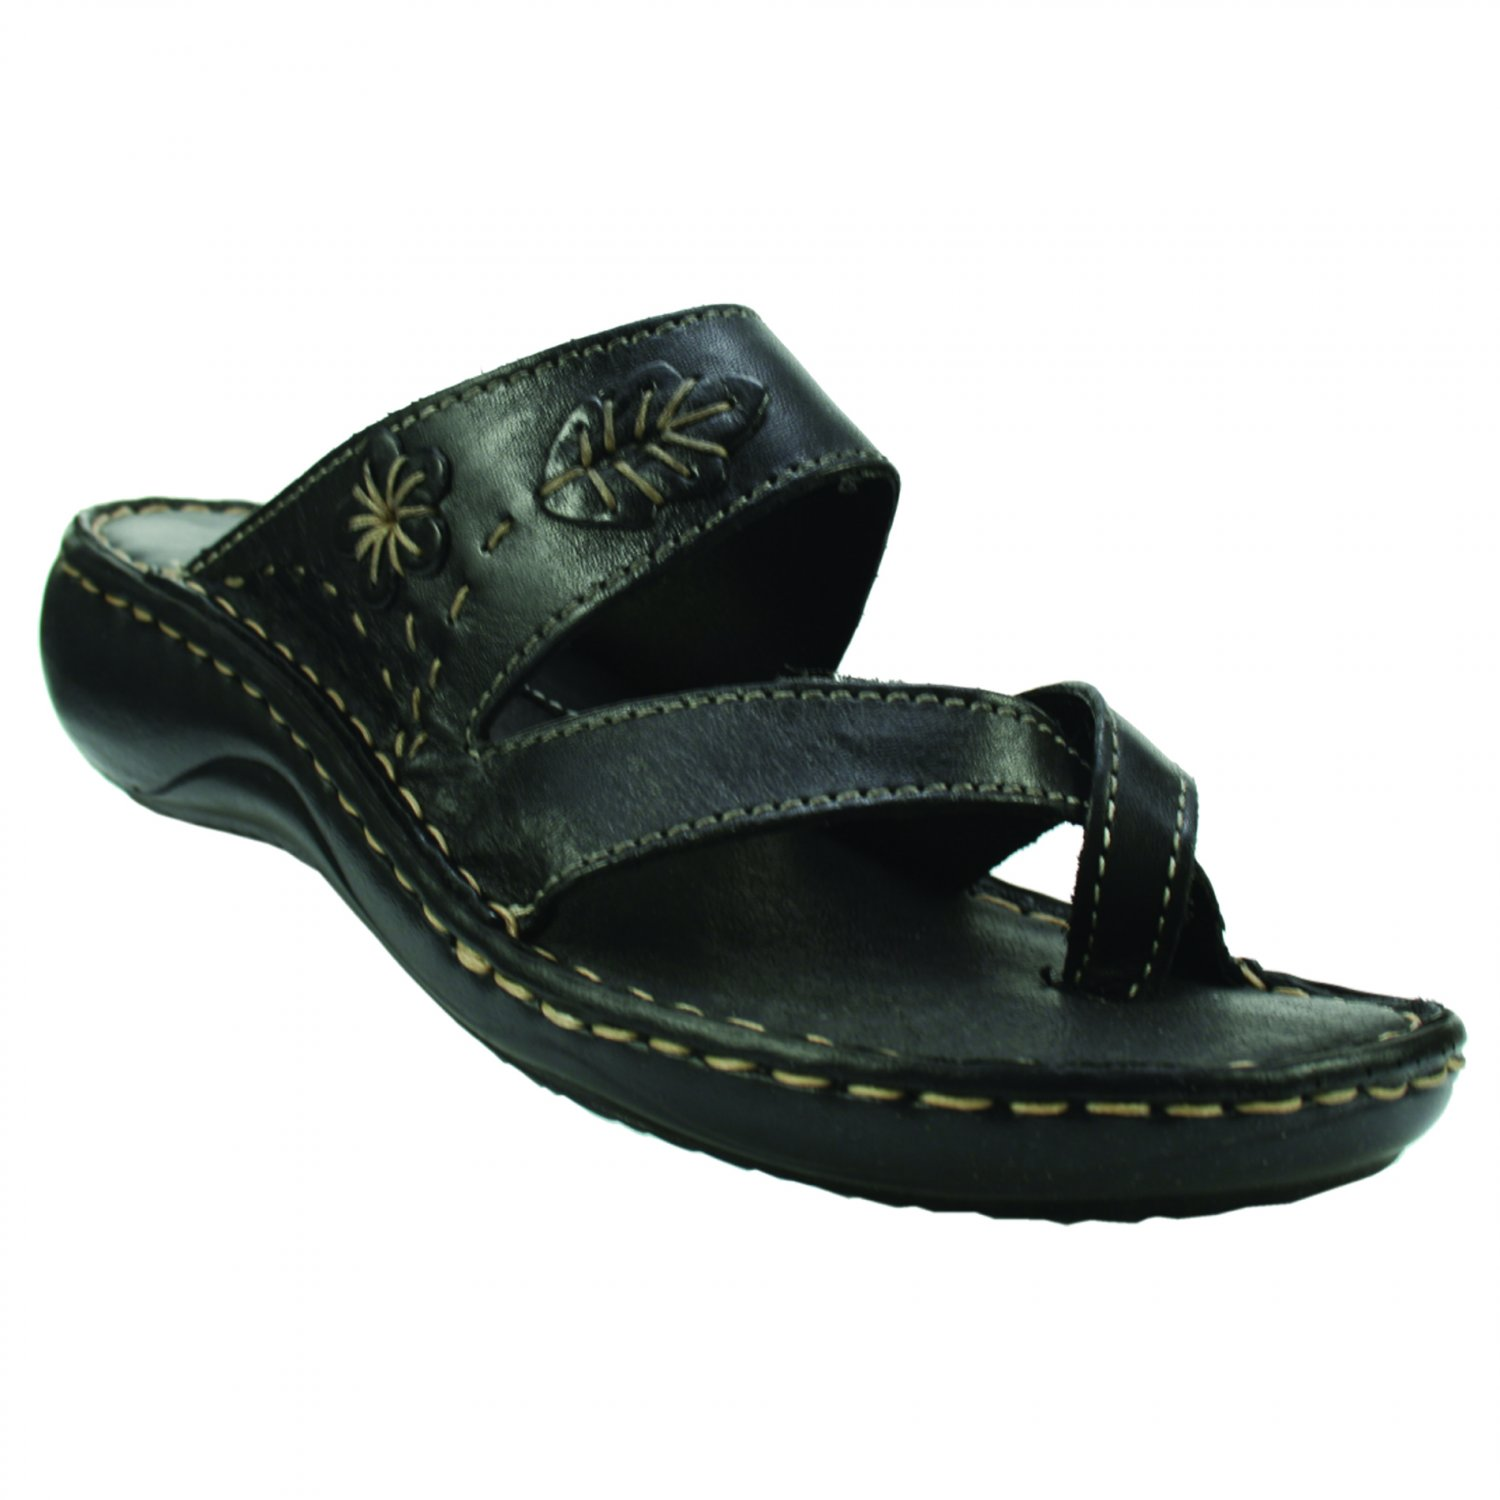 Spring Step MONTEREY Sandals Shoes All Sizes & Colors